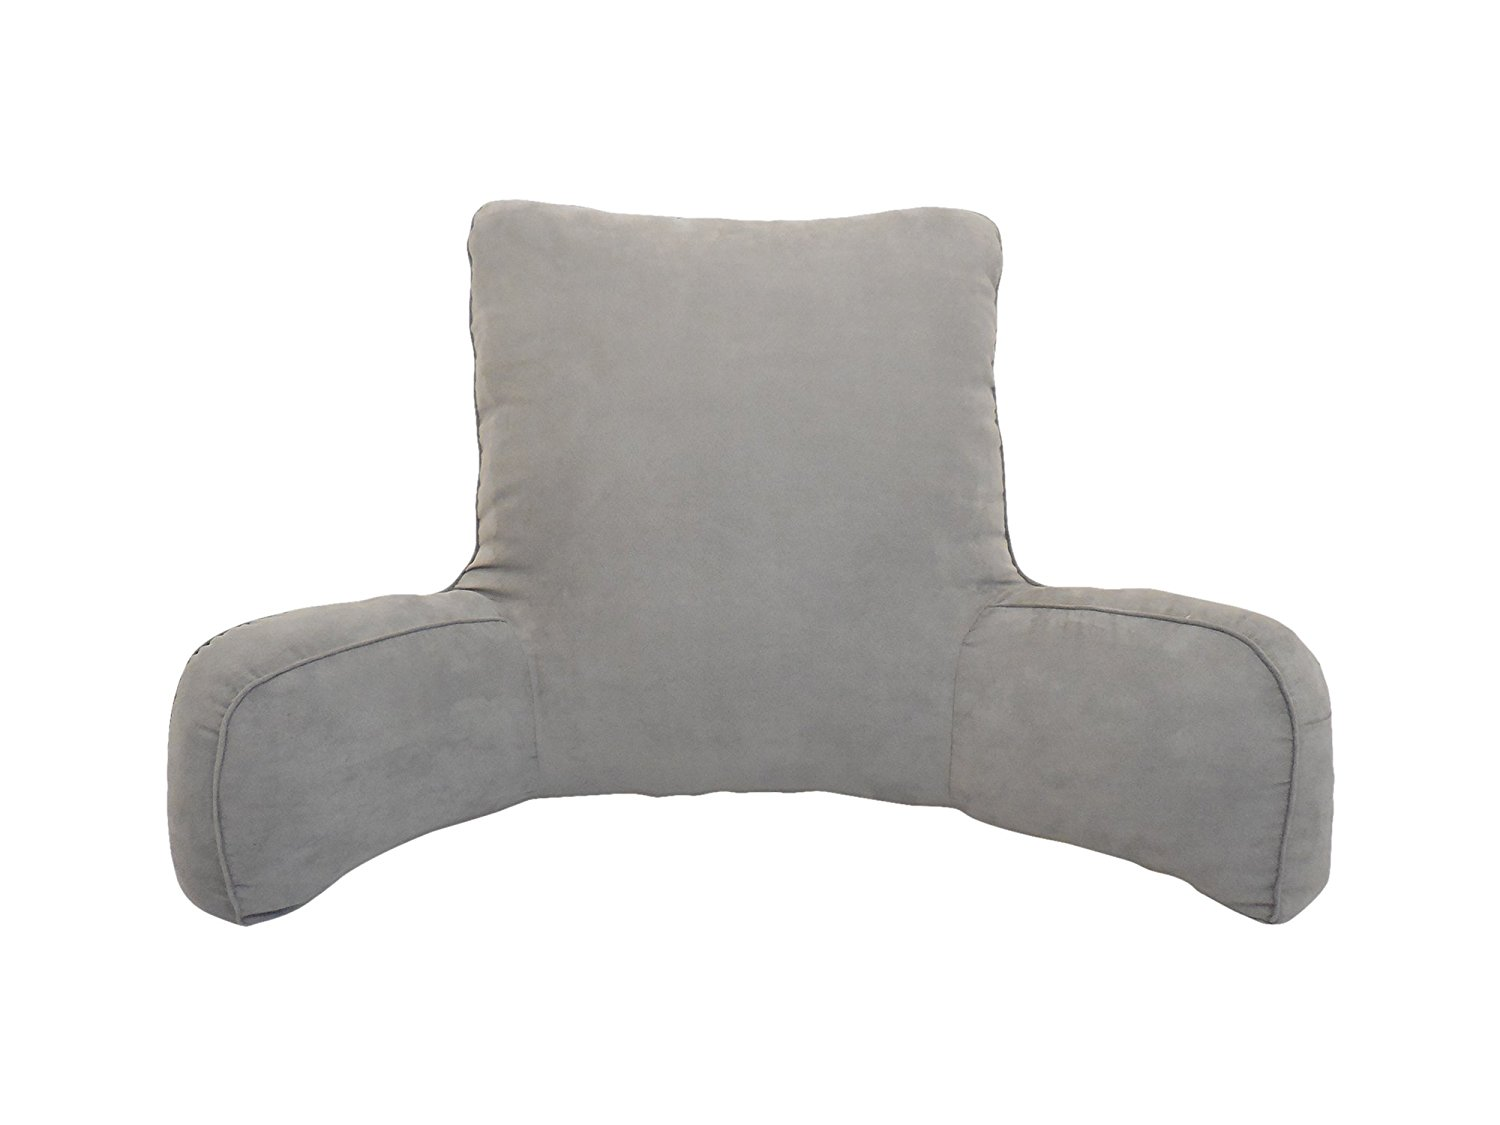 Bedrests | Wedge Bed Pillow Target | Bed Pillow with Arms